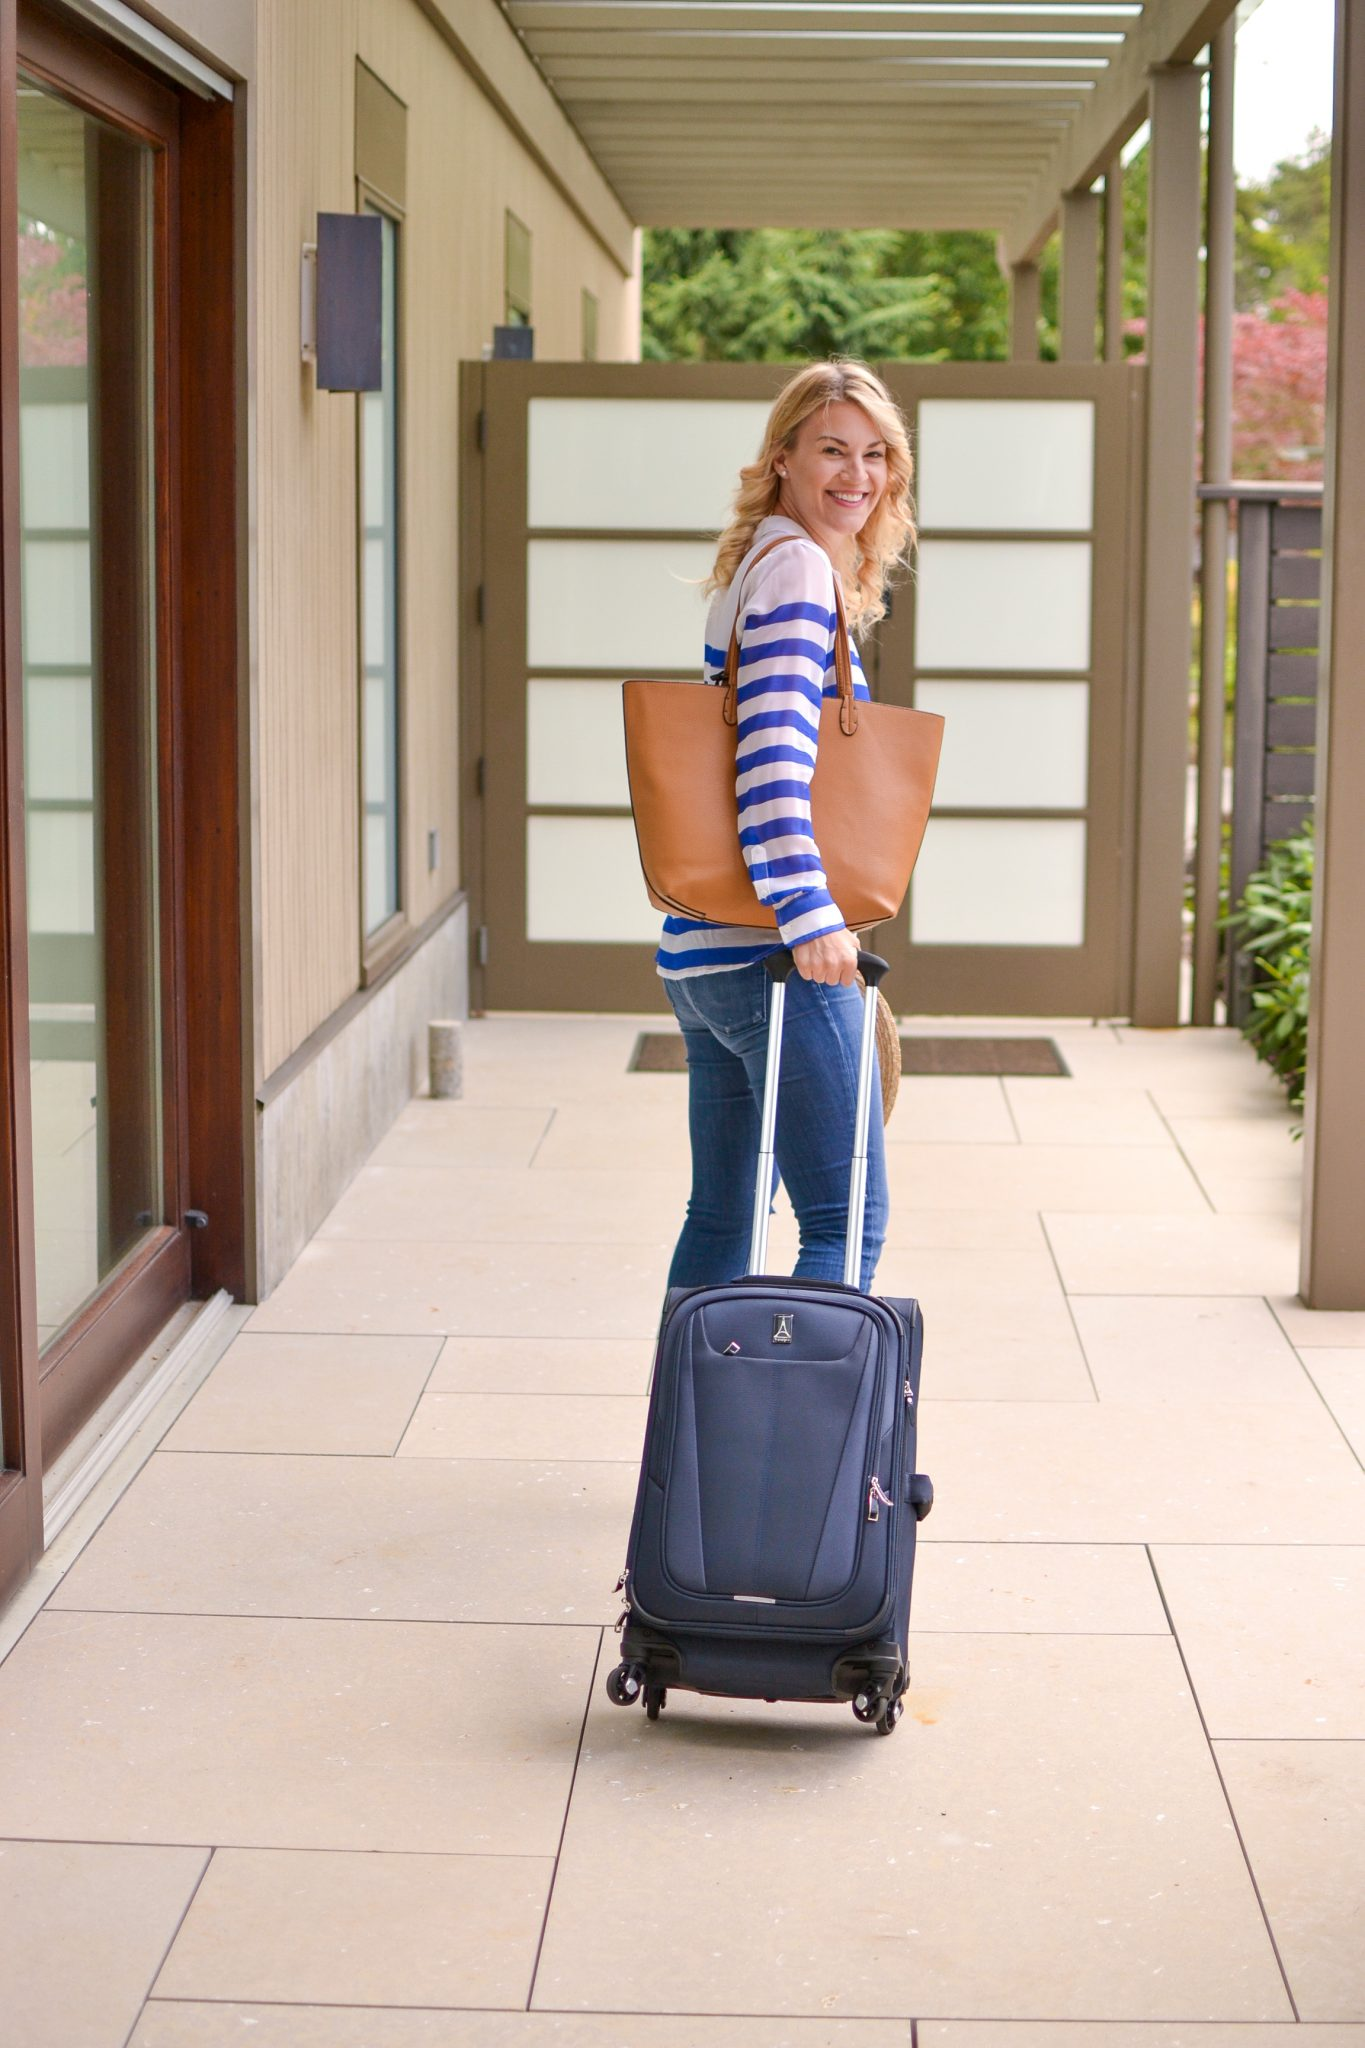 The Perfect Weekend Luggage Tote from Travelpro®